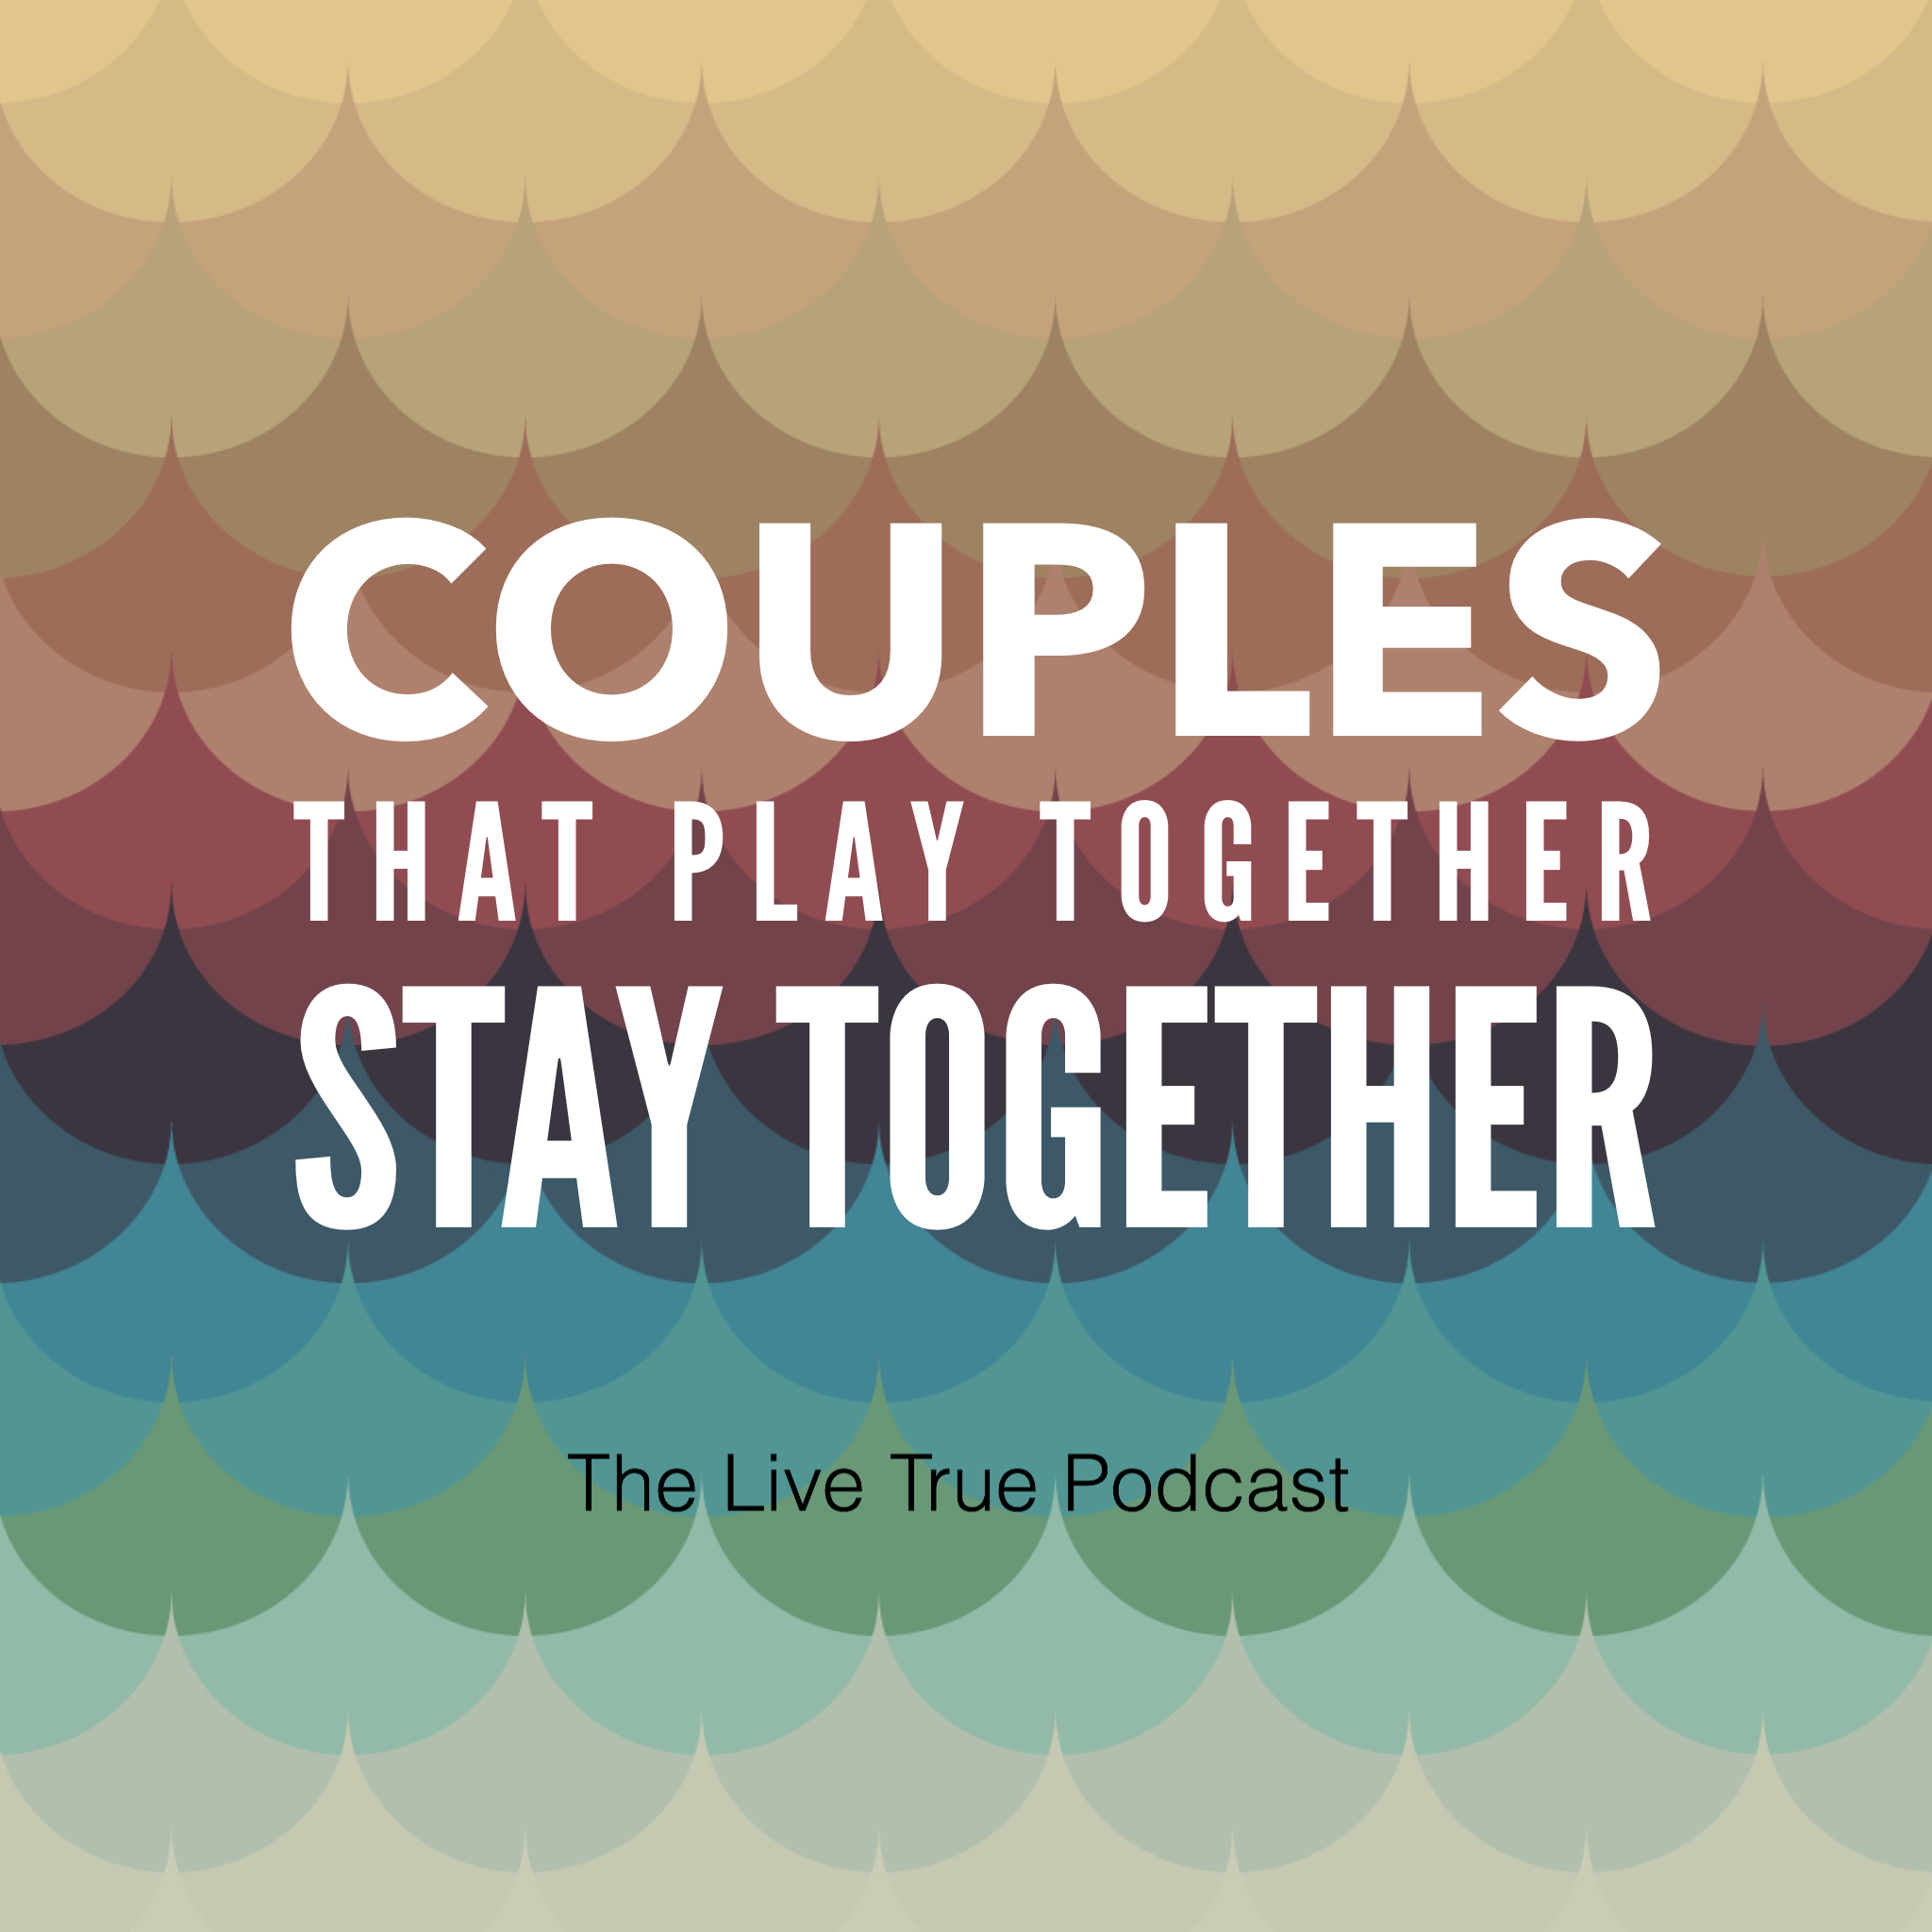 Couples play together stay together